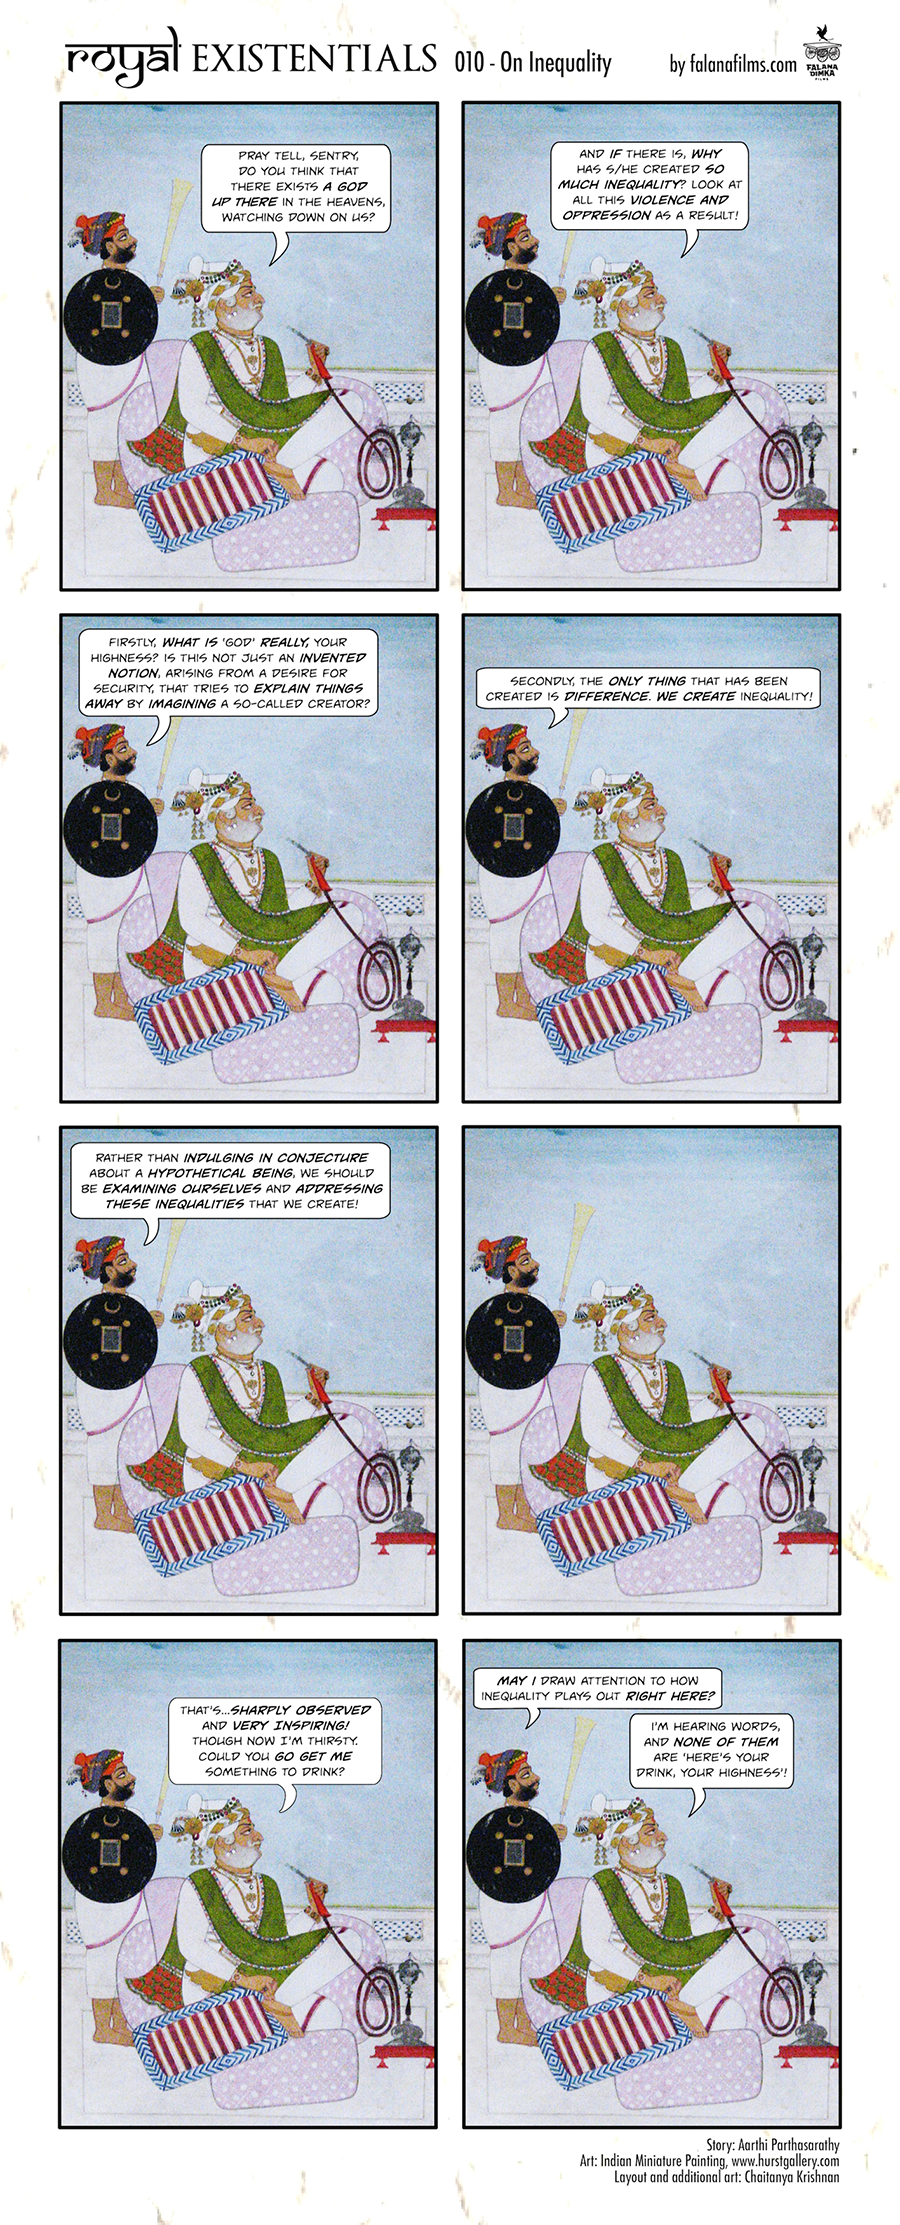 Royal Existentialists 001 On Inequality